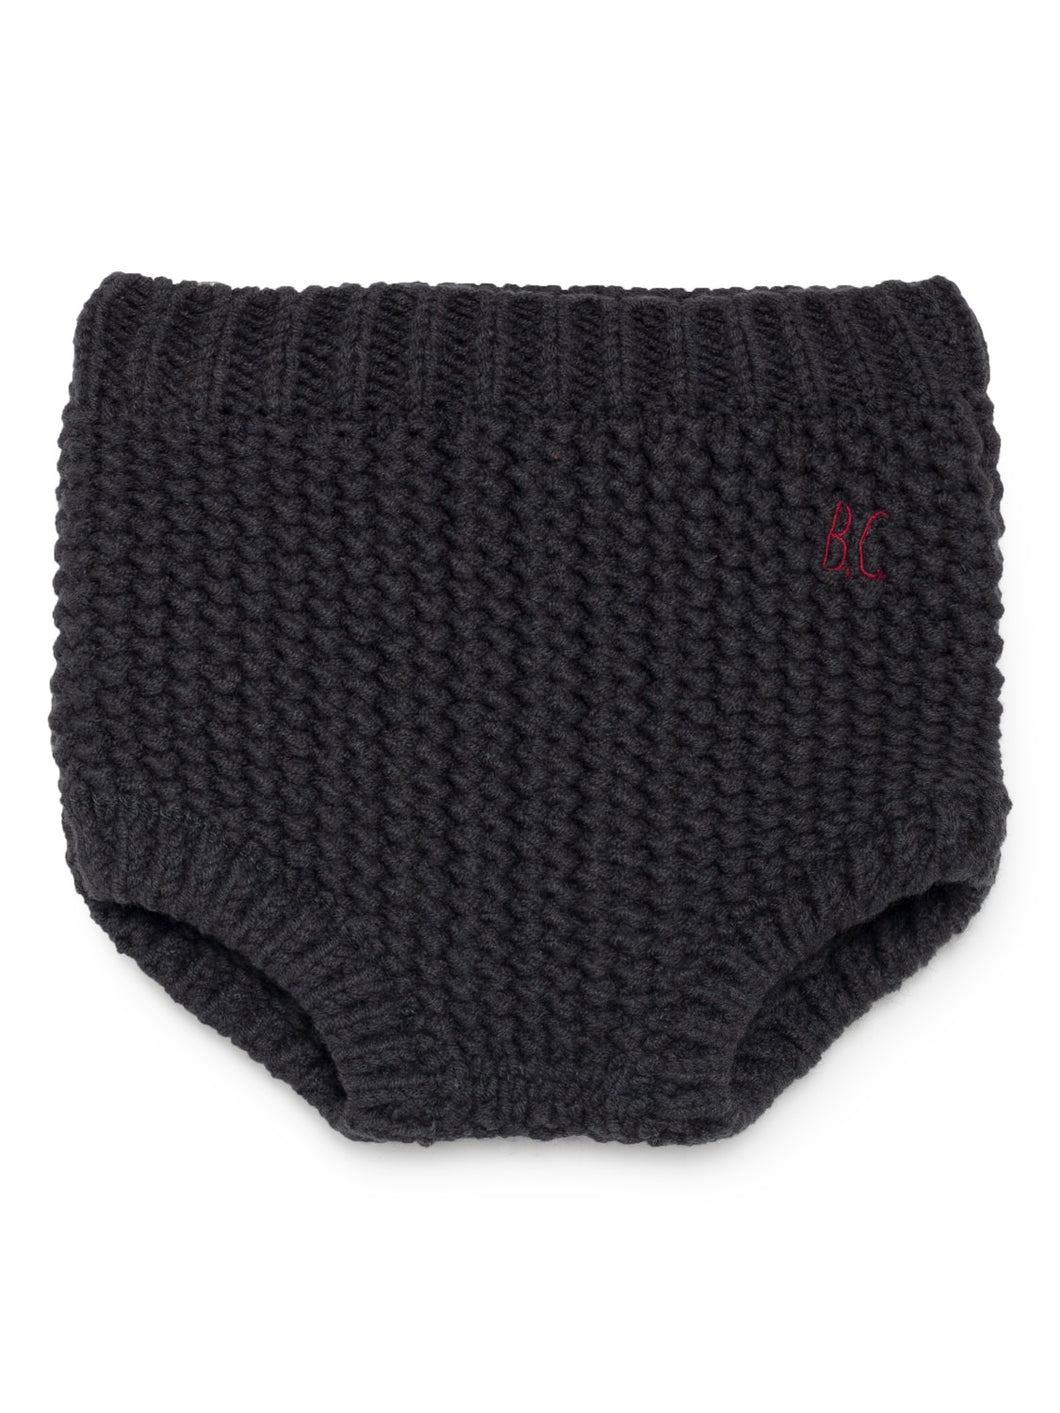 Bobo Choses Baby Black Knitted Culotte